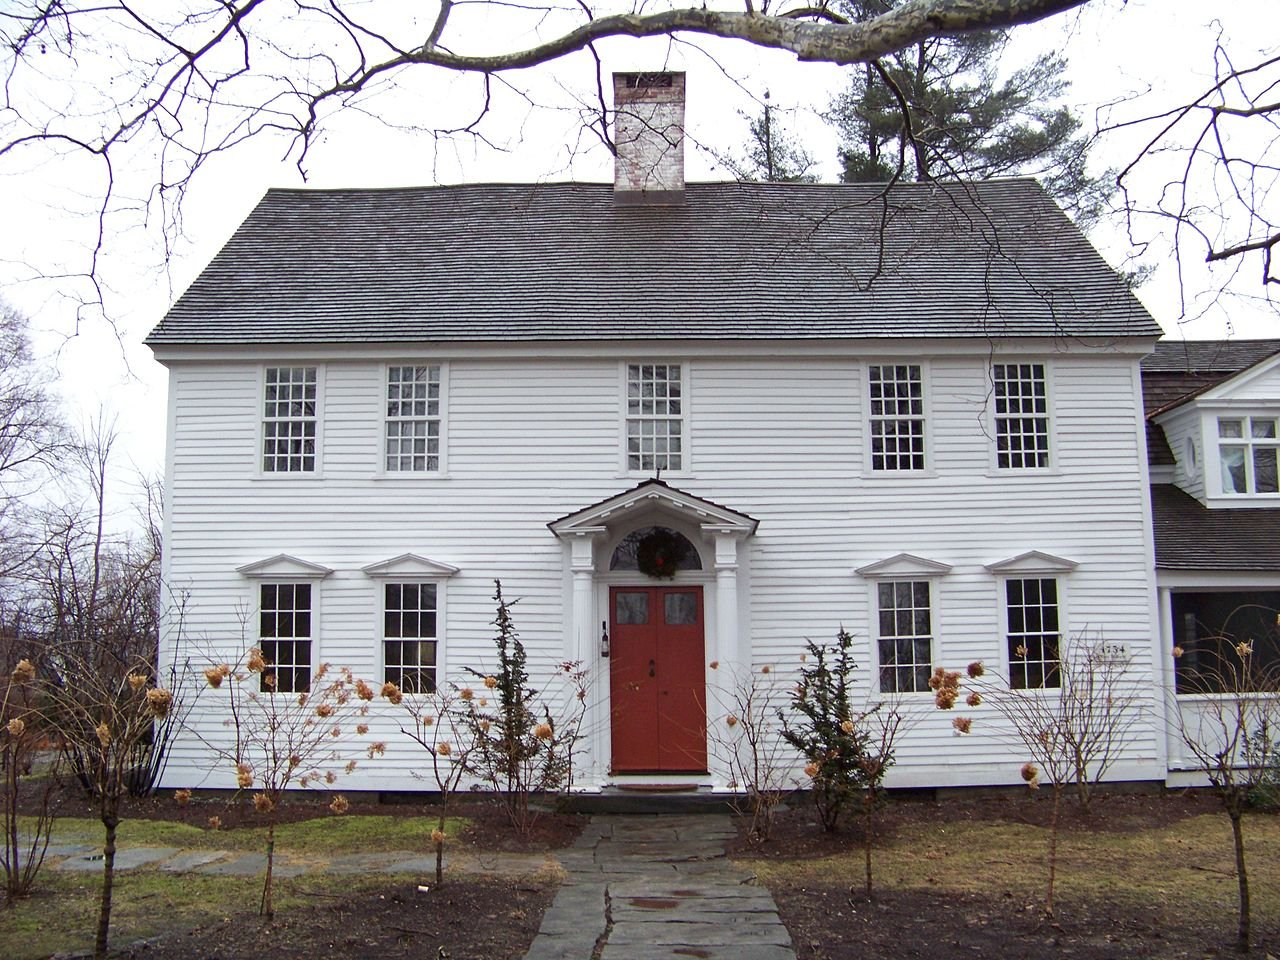 The Oliver Wolcott House was built in 1753 and is National Historic Landmark.